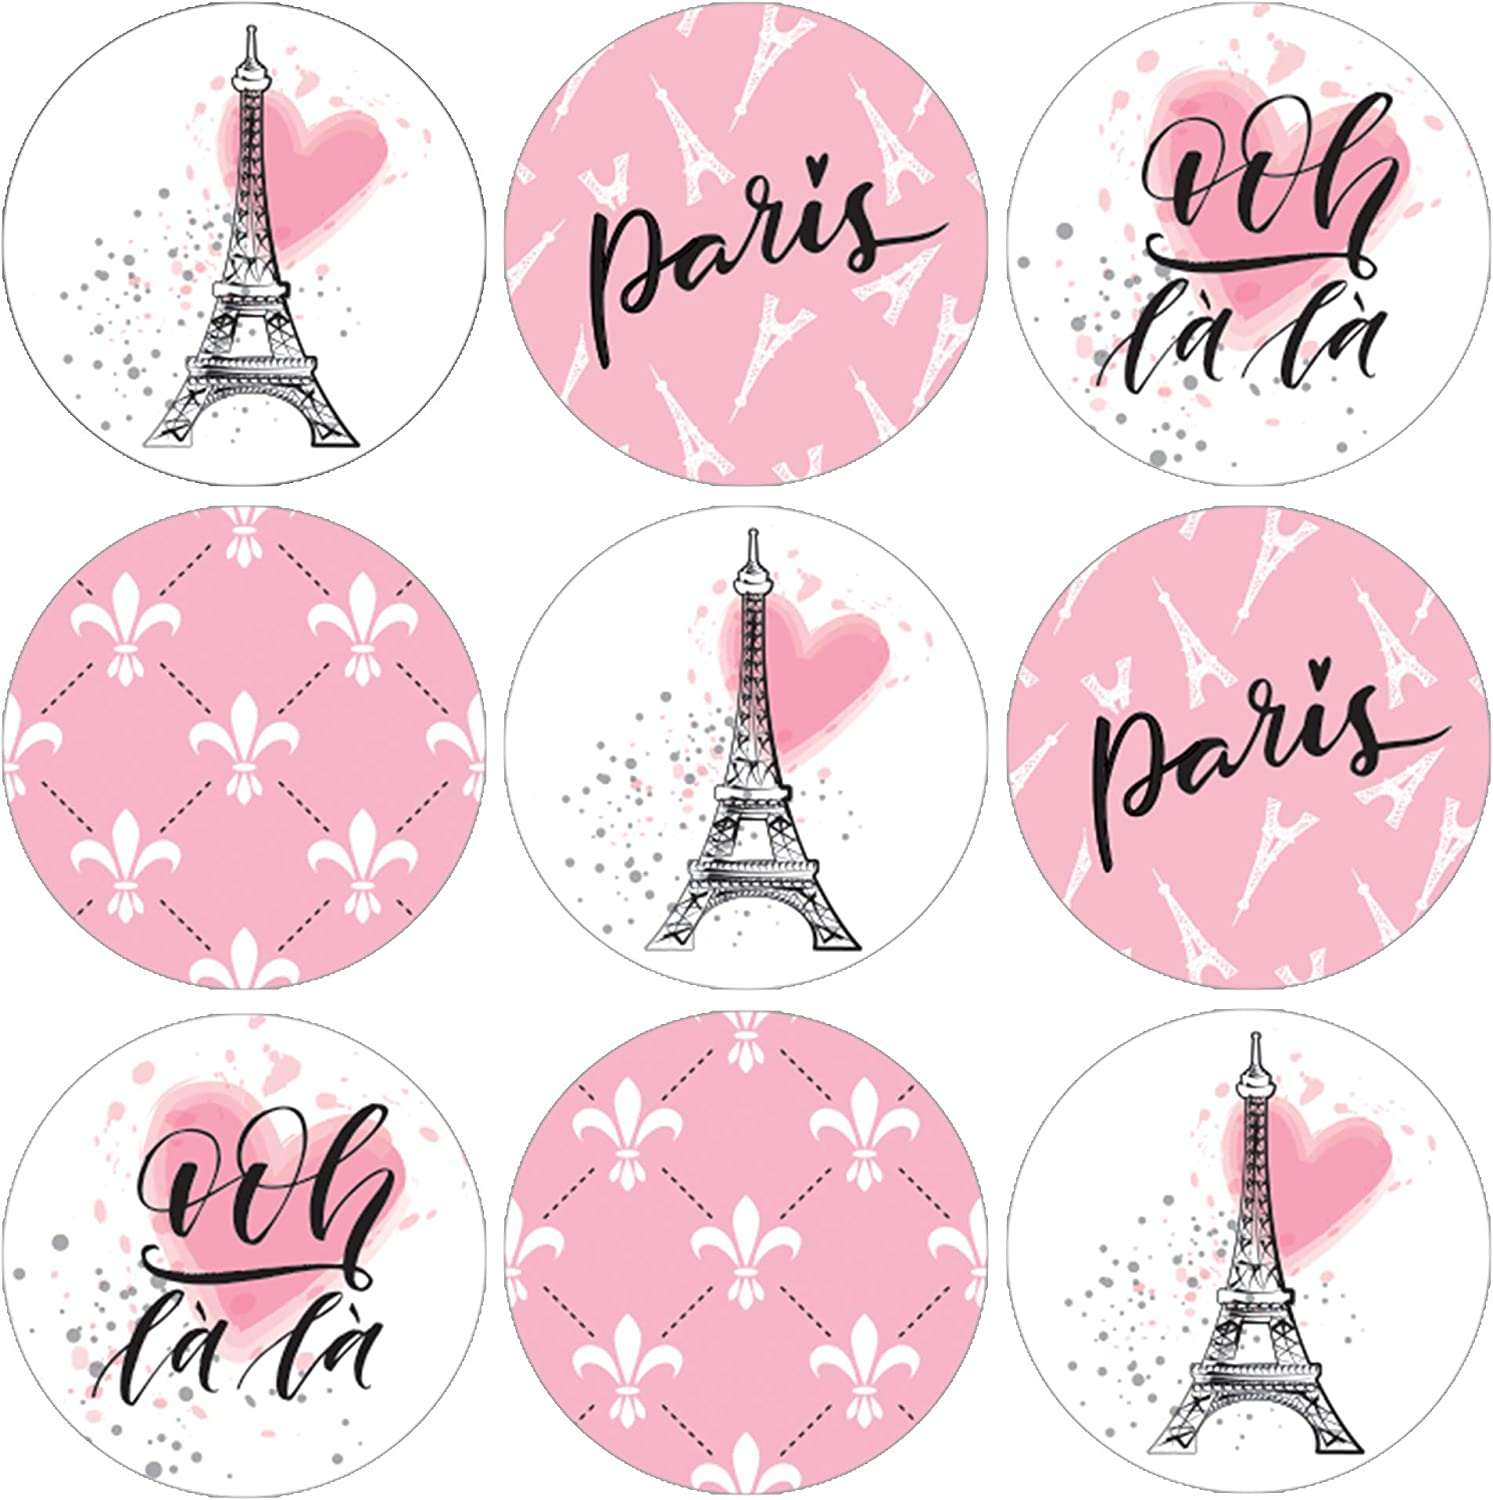 Baby Shower 324 Paris Kisses Stickers Labels Wedding Eiffel Tower Pink Kisses Stickers for Birthday Party Pink Paris Themed Hersheys Kisses Party Favors